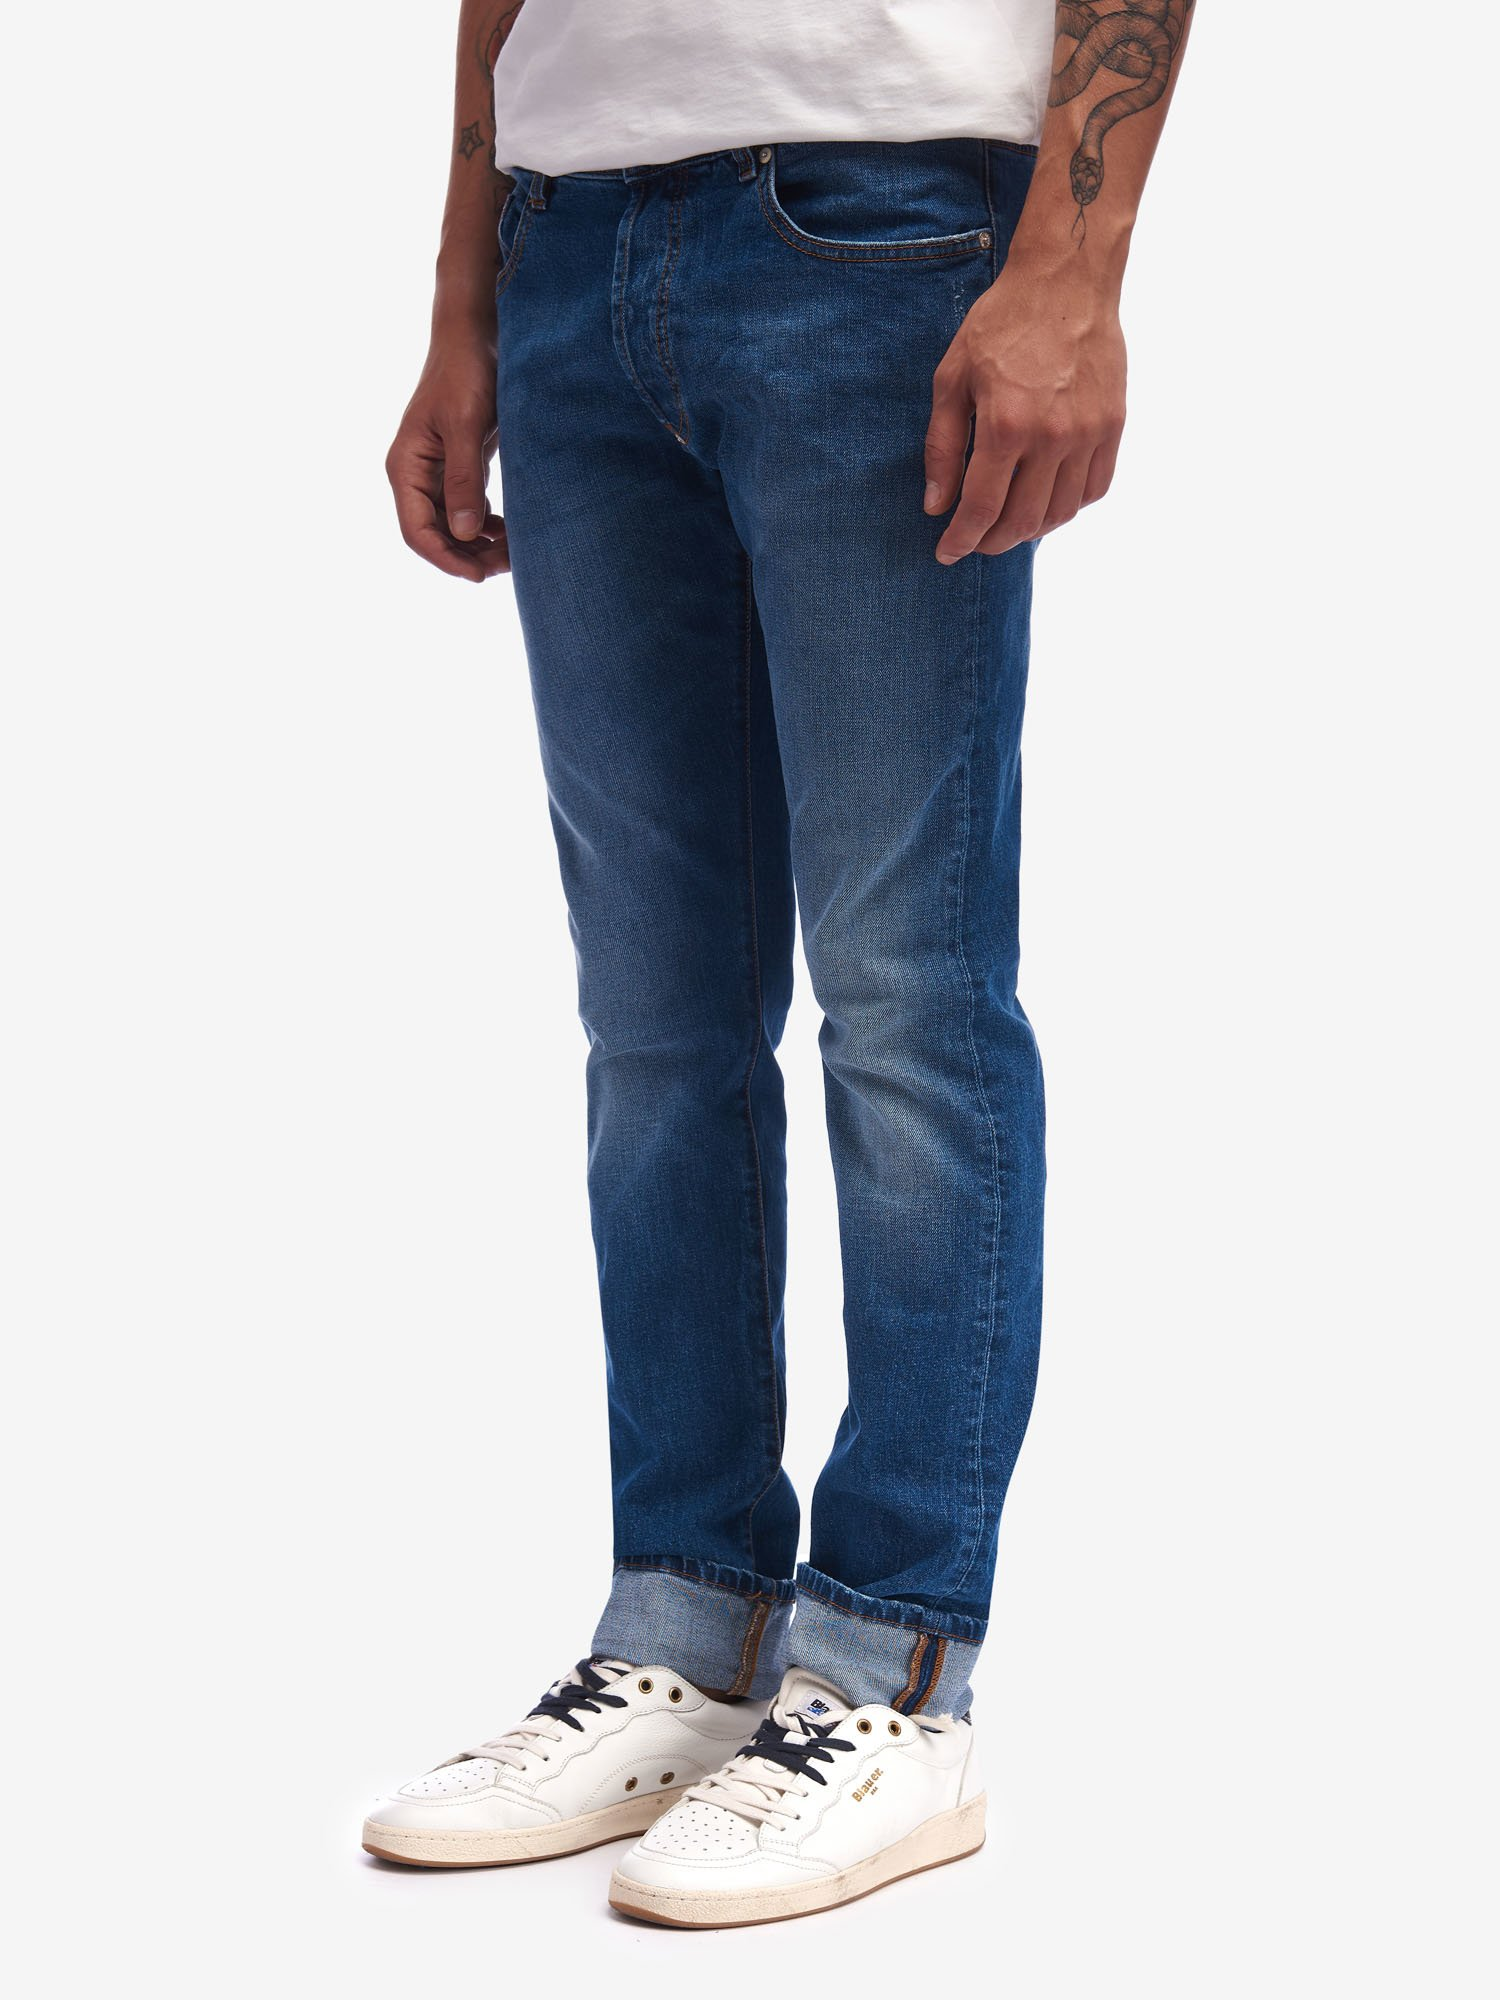 DENIM-STRETCHHOSE - Blauer